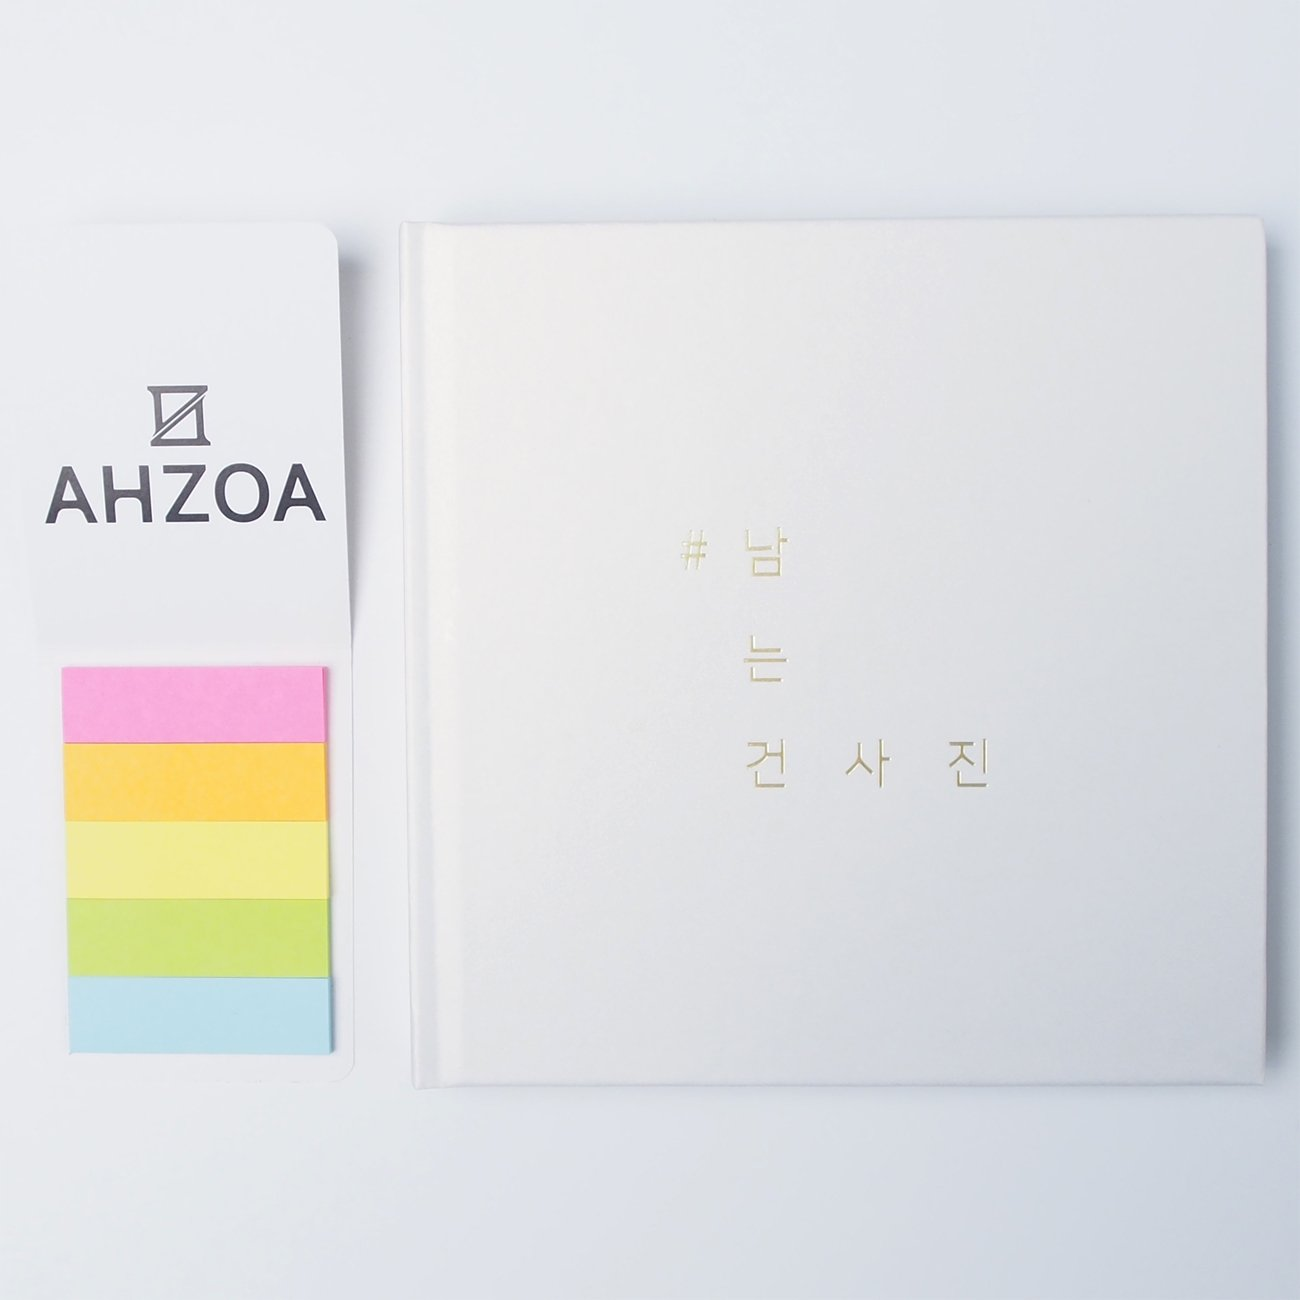 Self-adhesive Photo Album For Instagram with AHZOA 5 Colors Sticky Flag, Black Magnetic Pages, Hardcover Hardback (white) AHZOA / eeden design